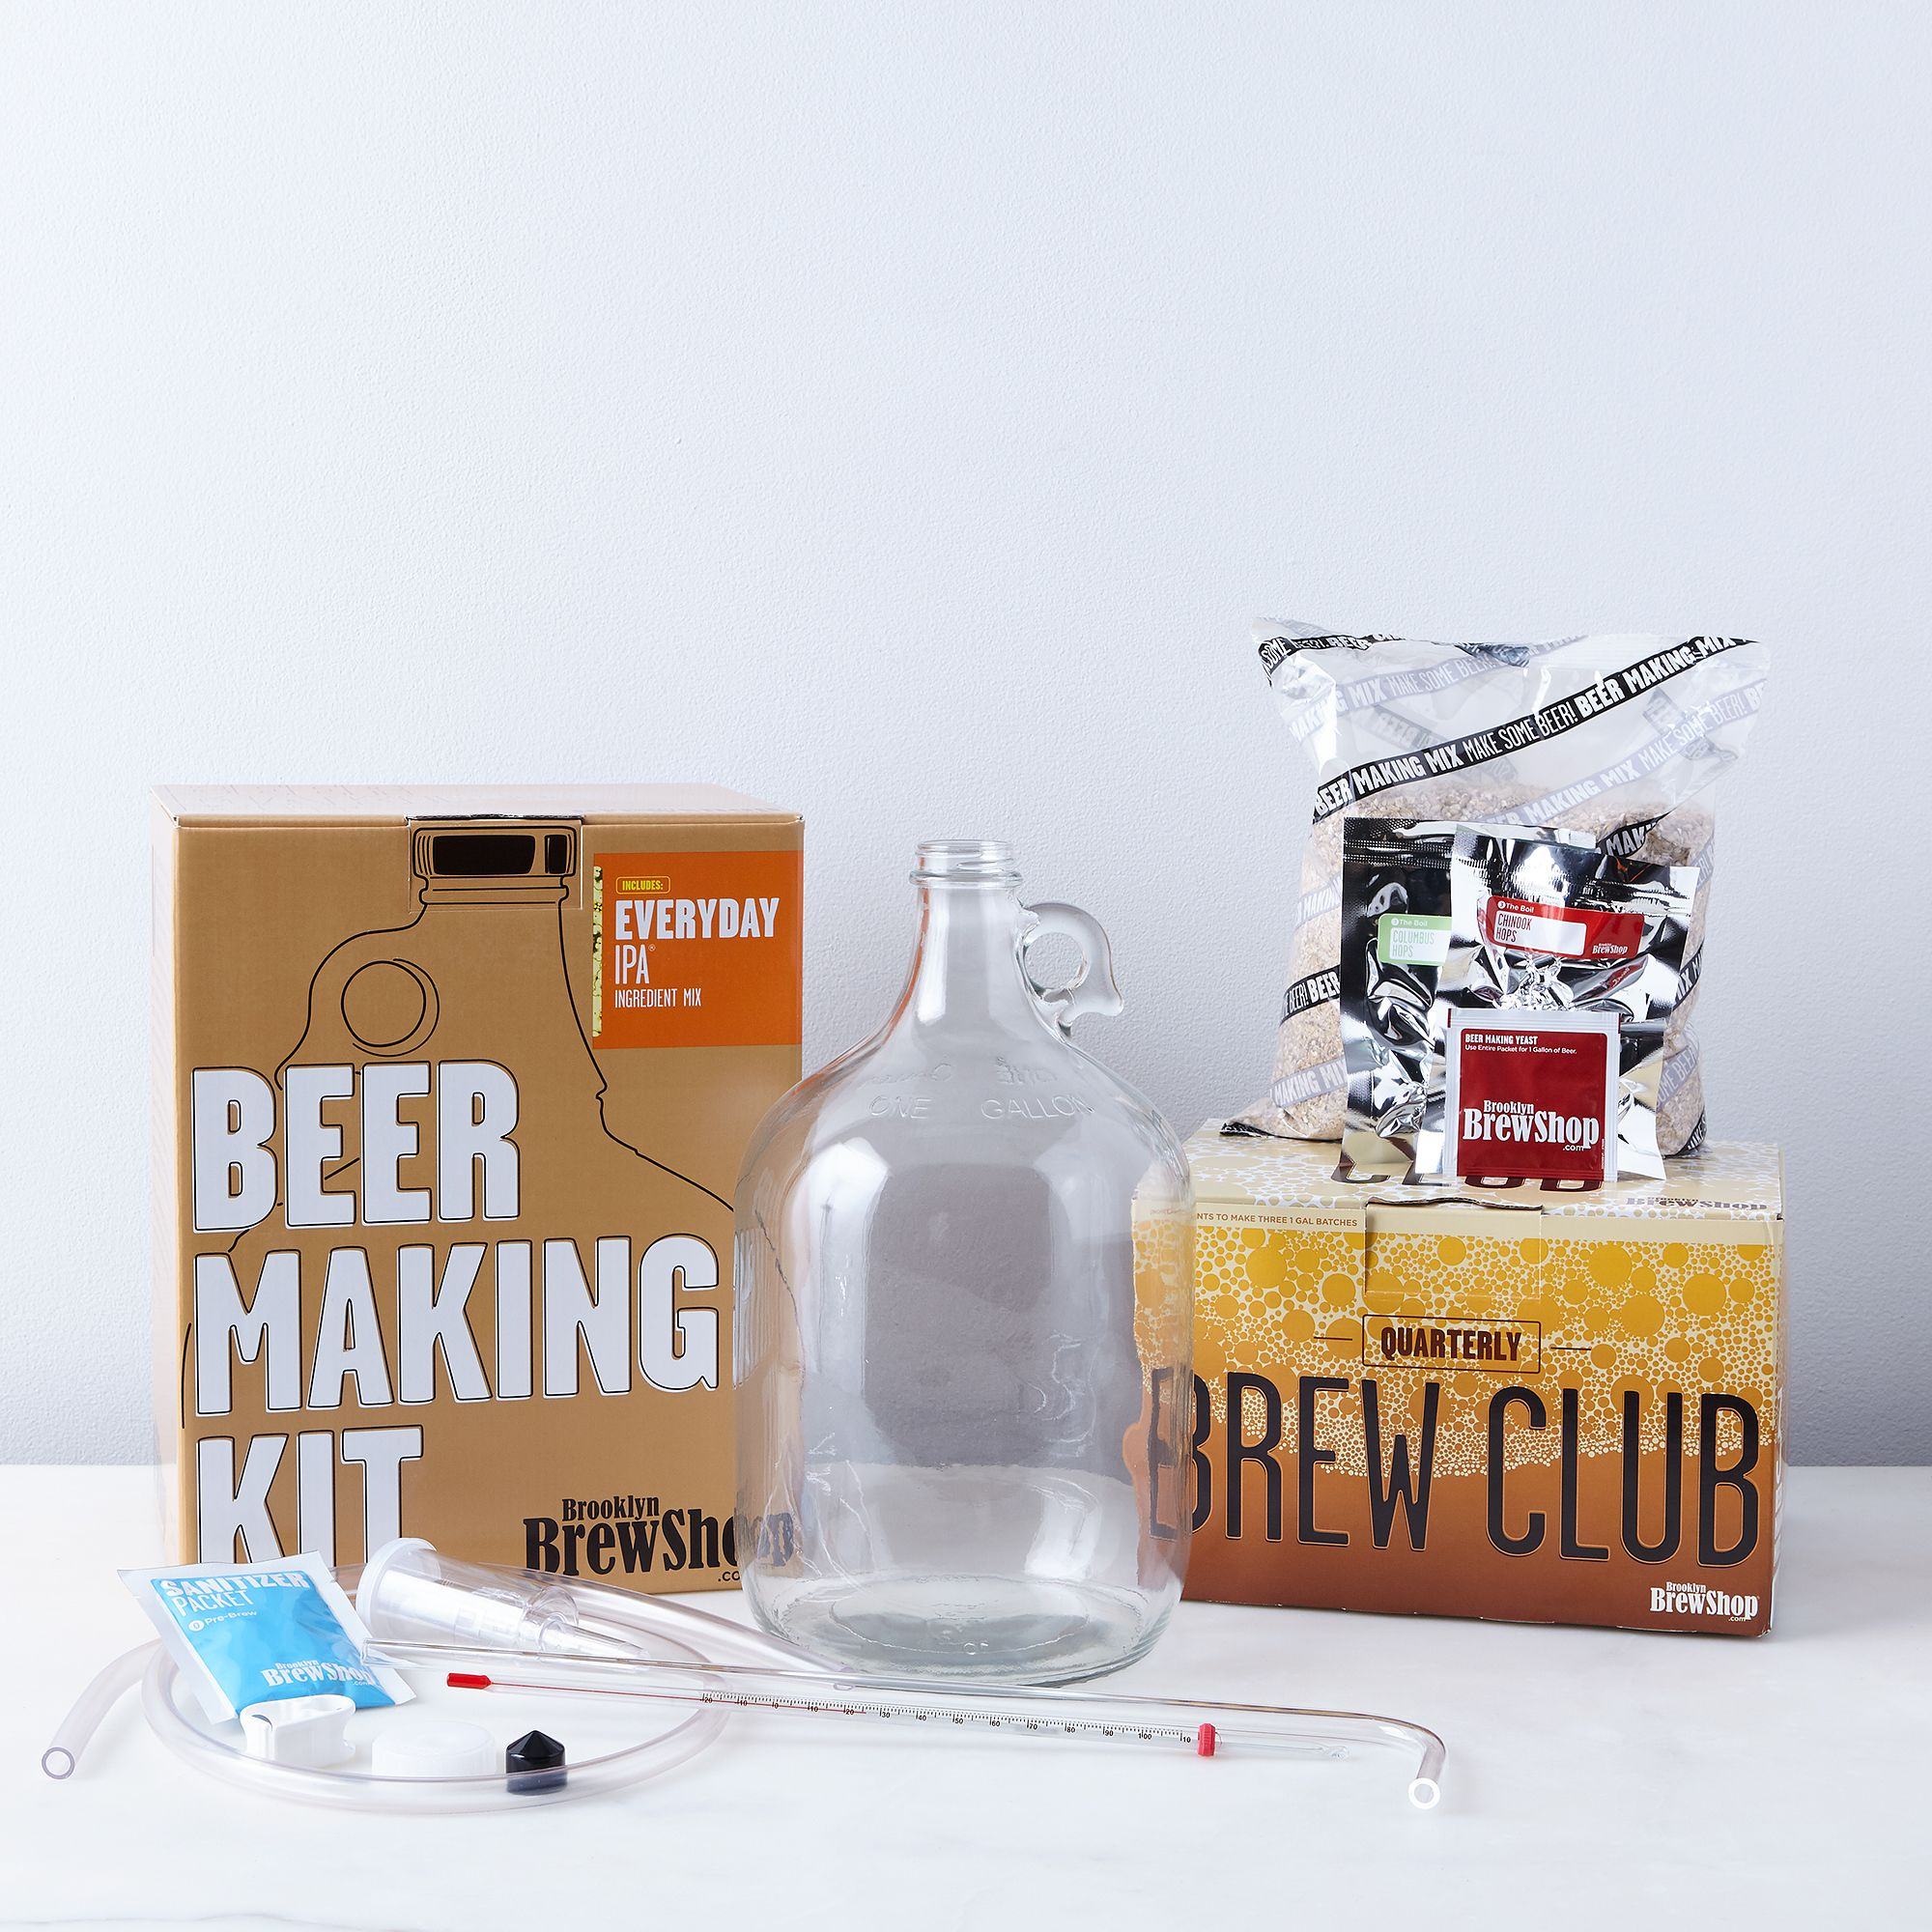 1d57be1b 7125 43fc b0b0 8734931a5dbe  2016 0909 brooklyn brew shop brew club subscription and beer making kit silo rocky luten 149